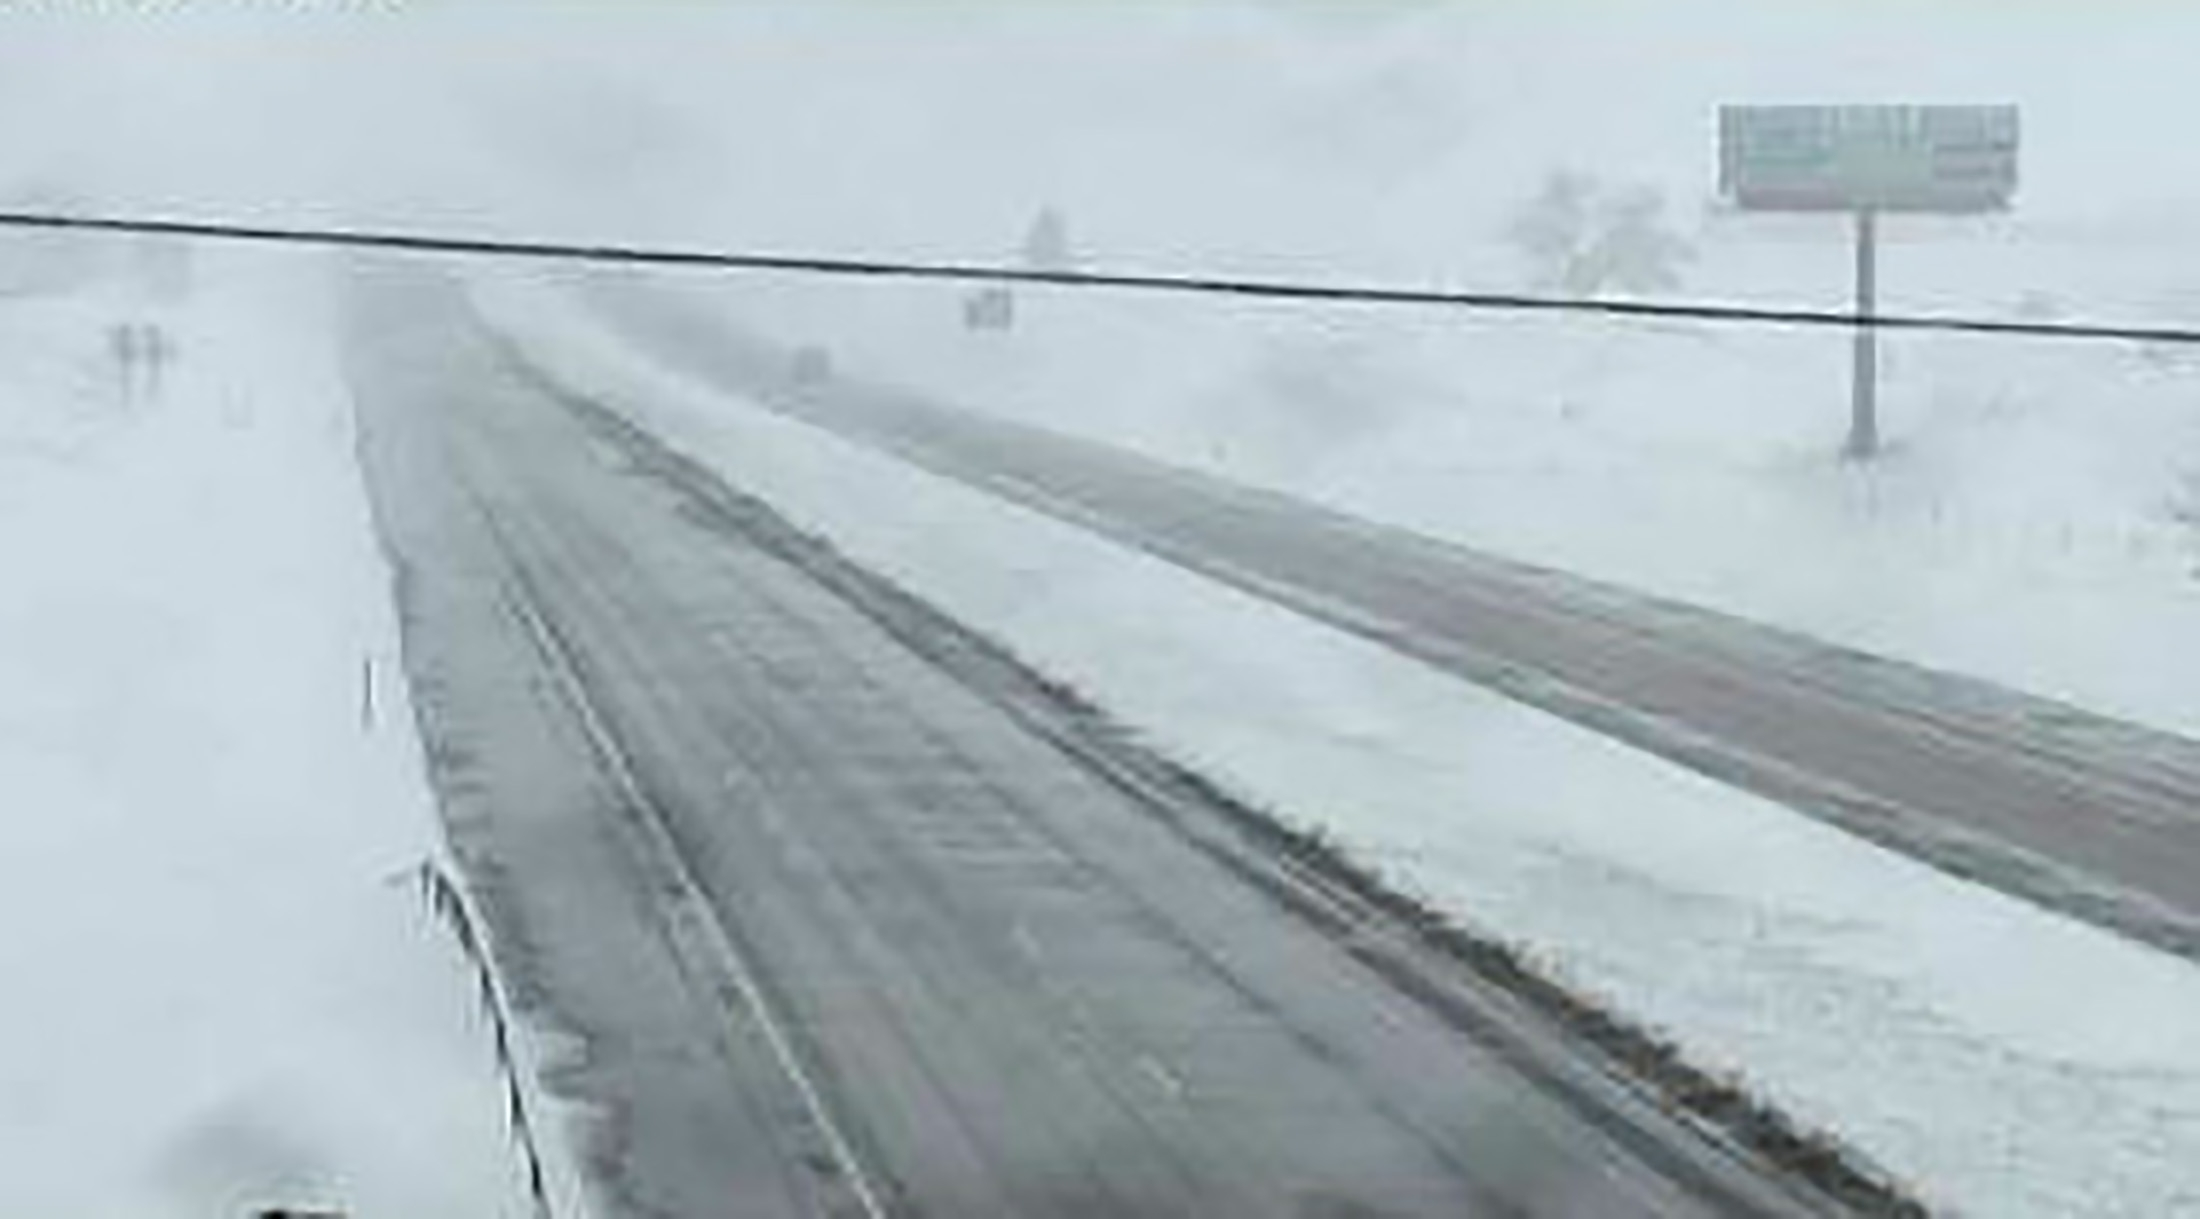 Snow covers the ground off Interstate 90 east of Sturgis, South Dakota, in this view from a highway camera taken Sunday.  Hail, snow, a tornado and a tropical storm made it a 'severe weather' Mother's Day in much of the center of the United States and on the Carolina coast on Sunday. | SOUTH DAKOTA DEPARTMENT OF TRANSPORTATION / HANDOUT  / REUTERS